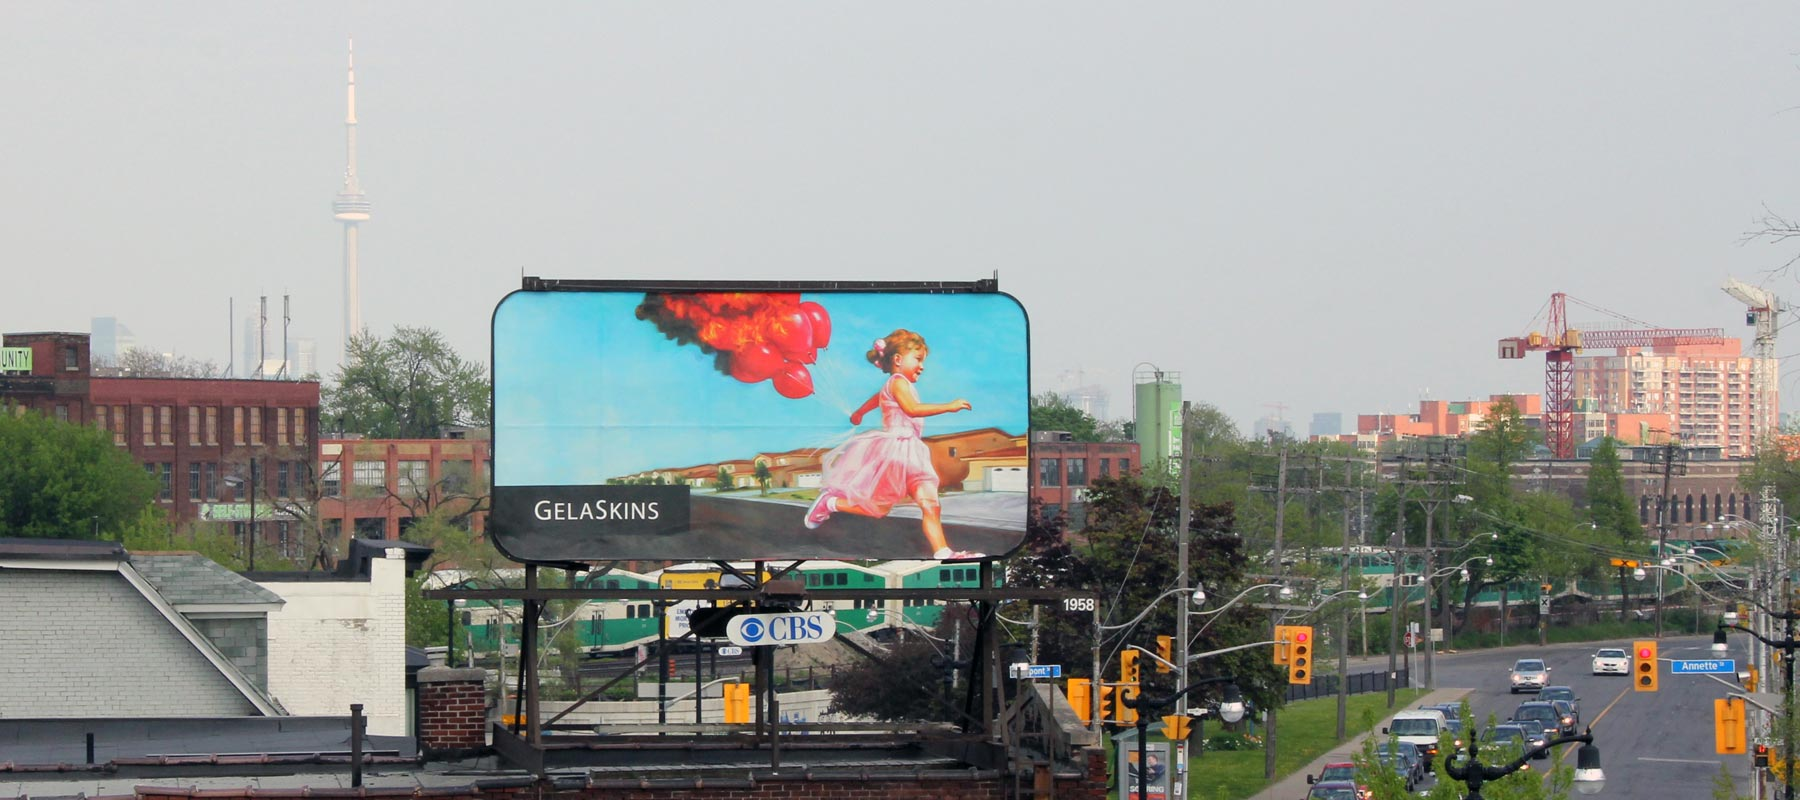 Ignite by Robert Carter - GelaSkins Billboard